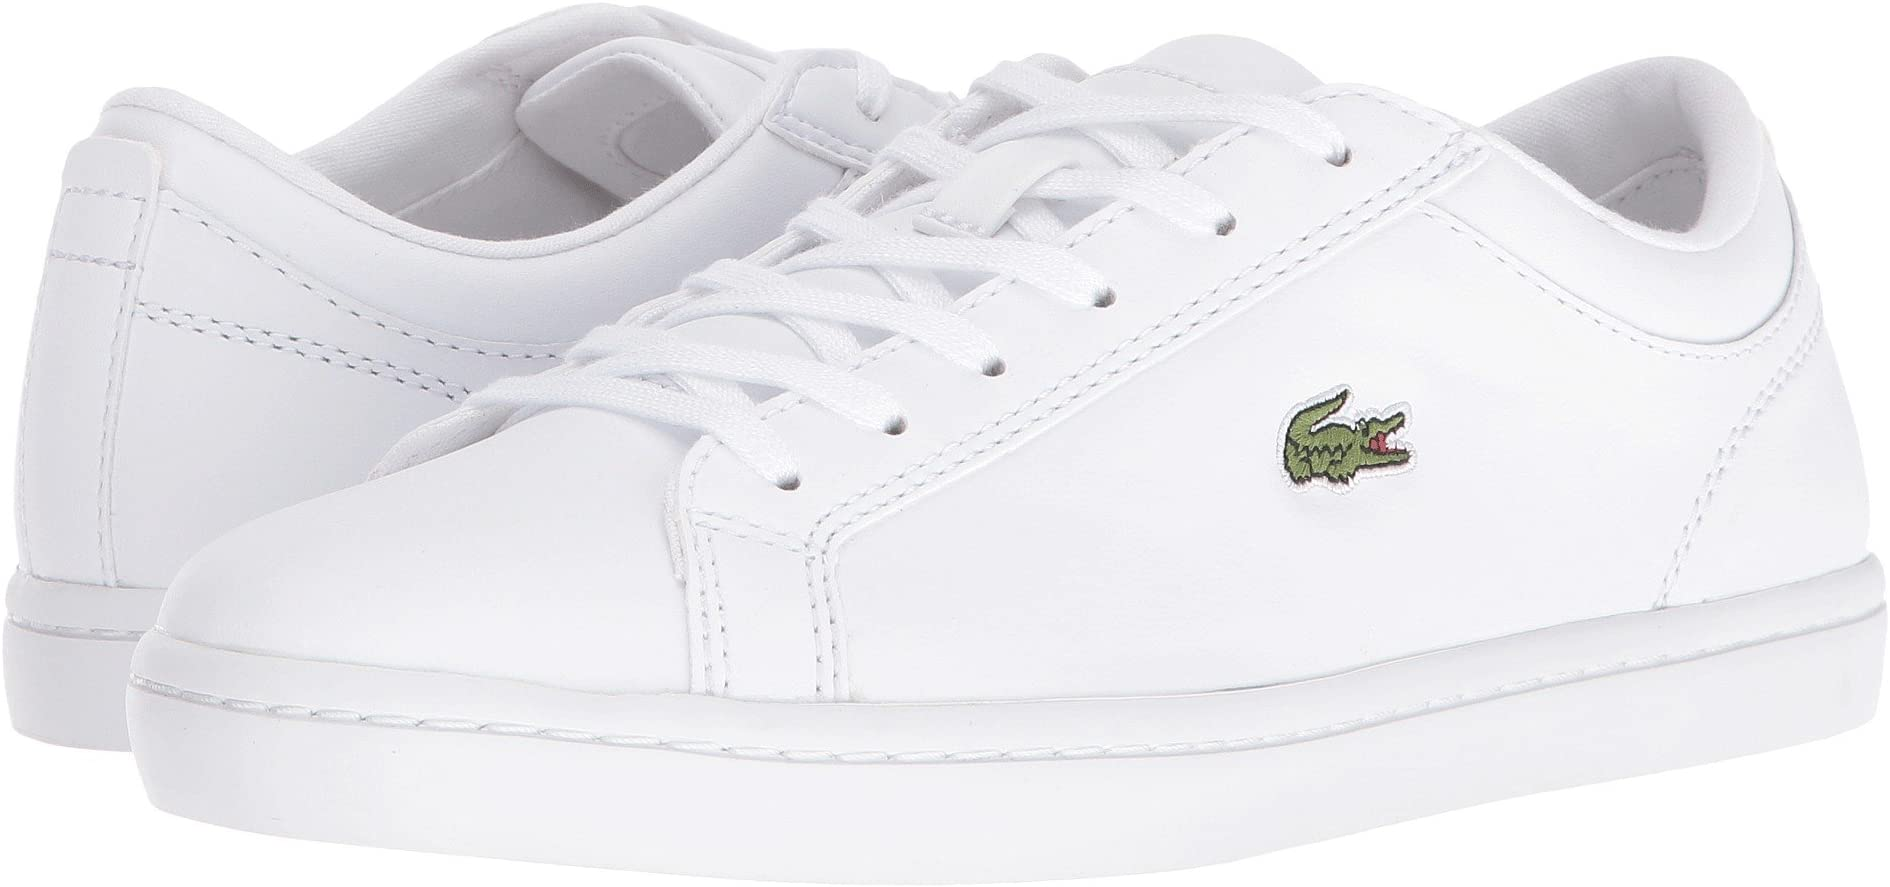 Lacoste Straightset BL1